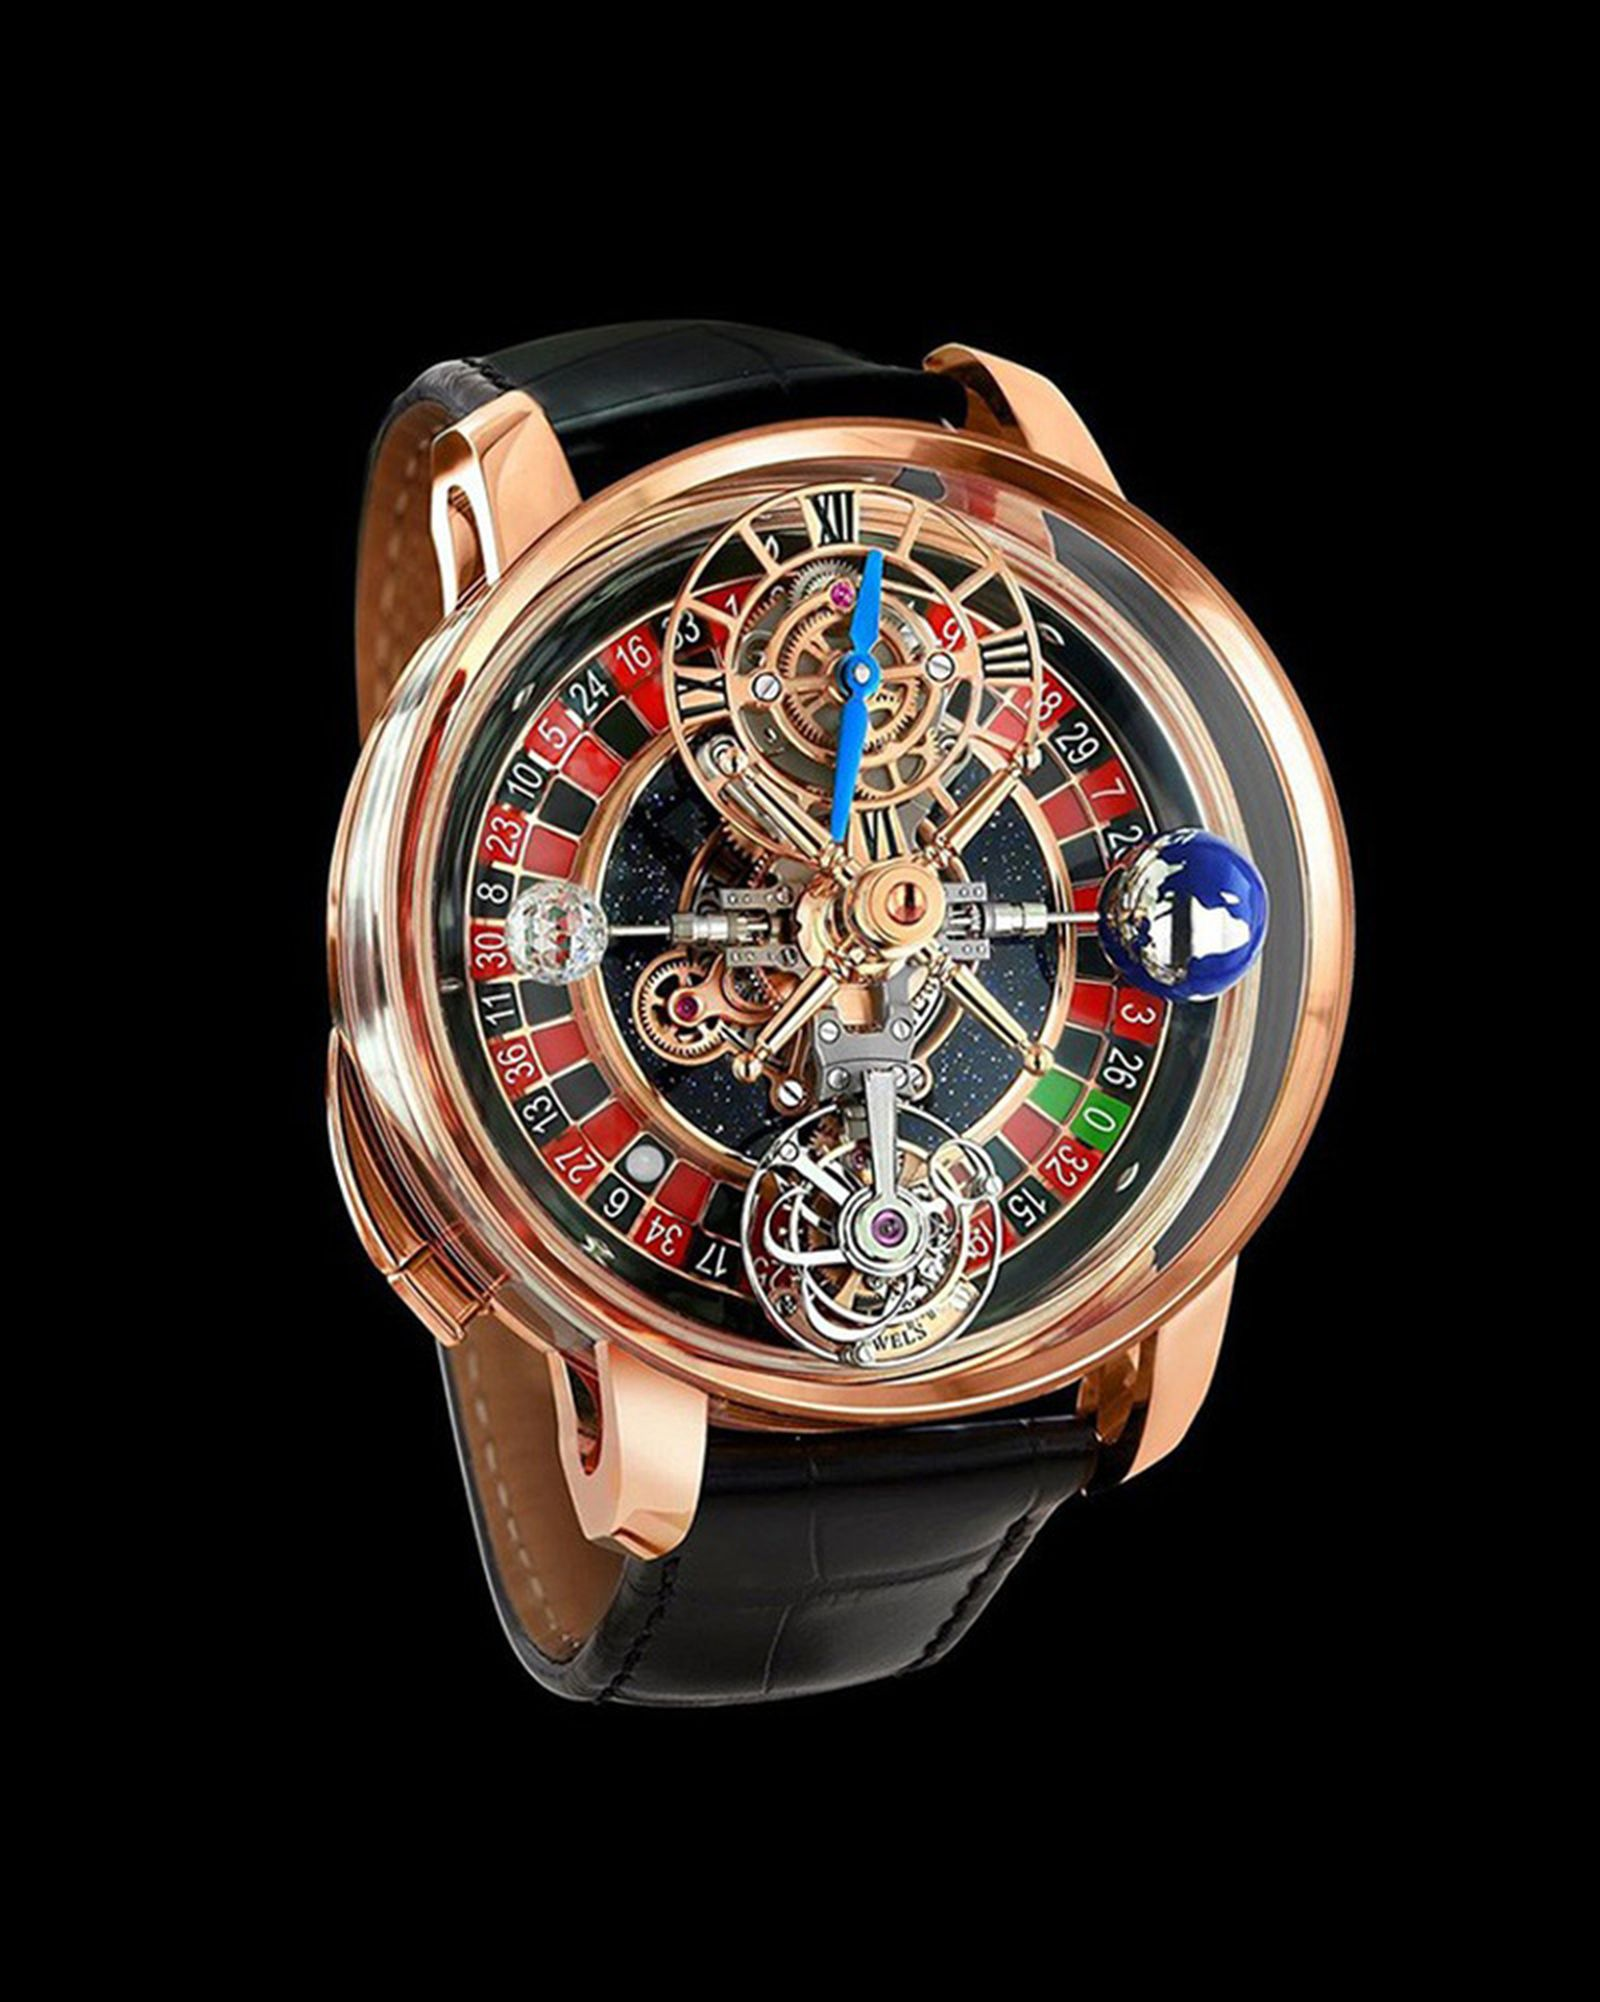 Jacob & Co. Astronomia Casino watch, with working roulette wheel.  $620,000.